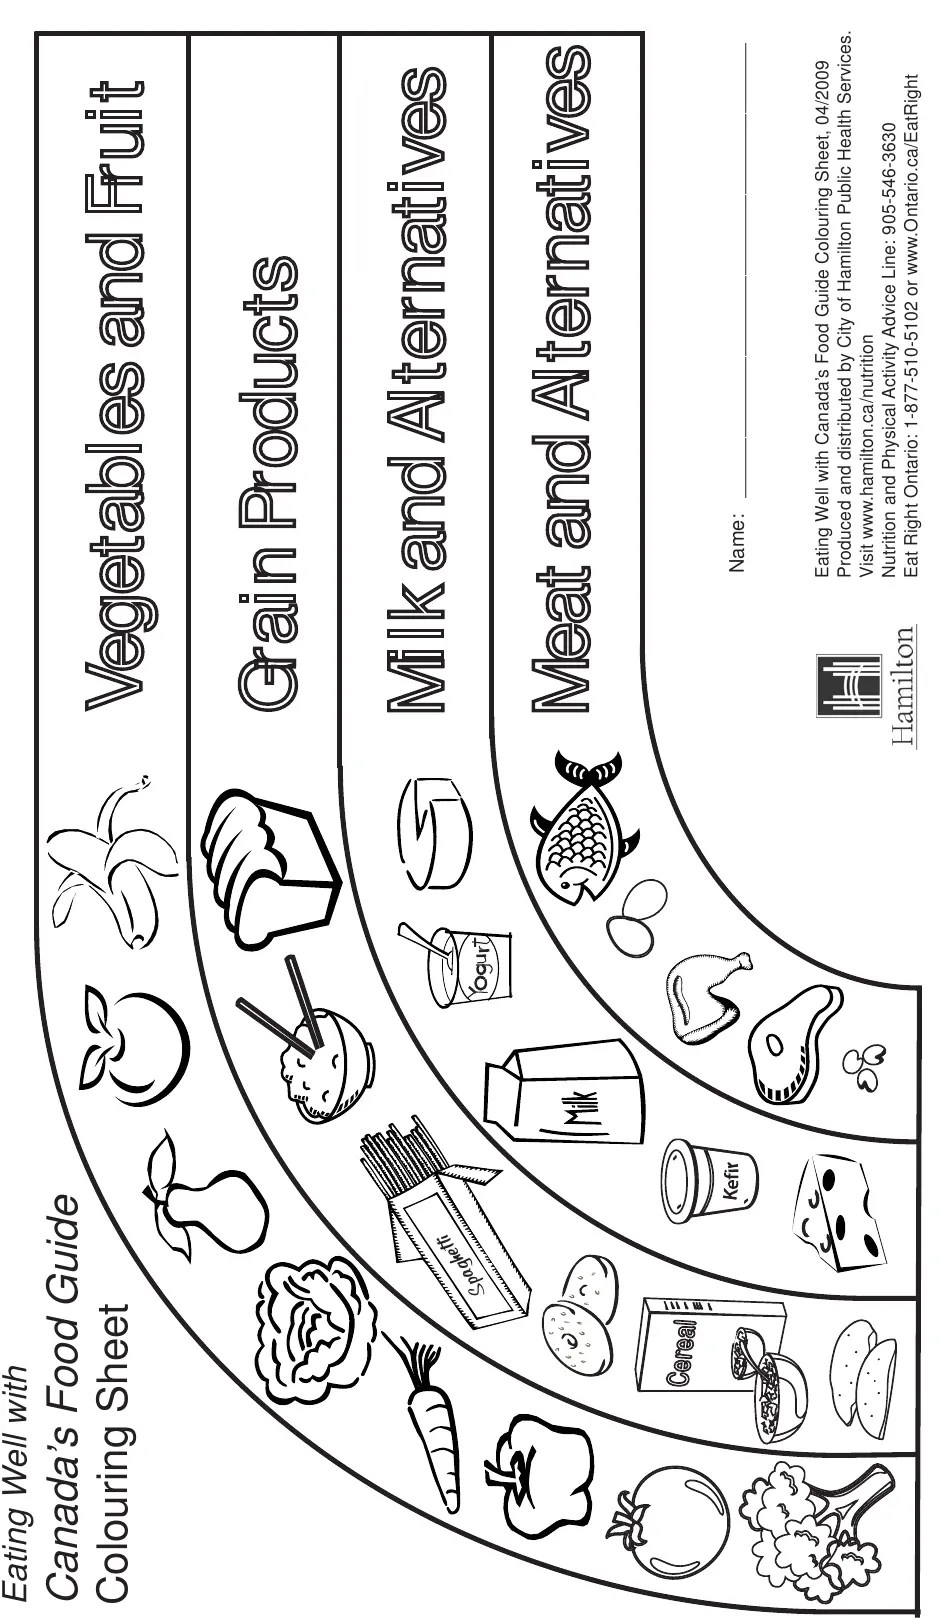 Canada Canada's Food Guide Coloring Sheet Download